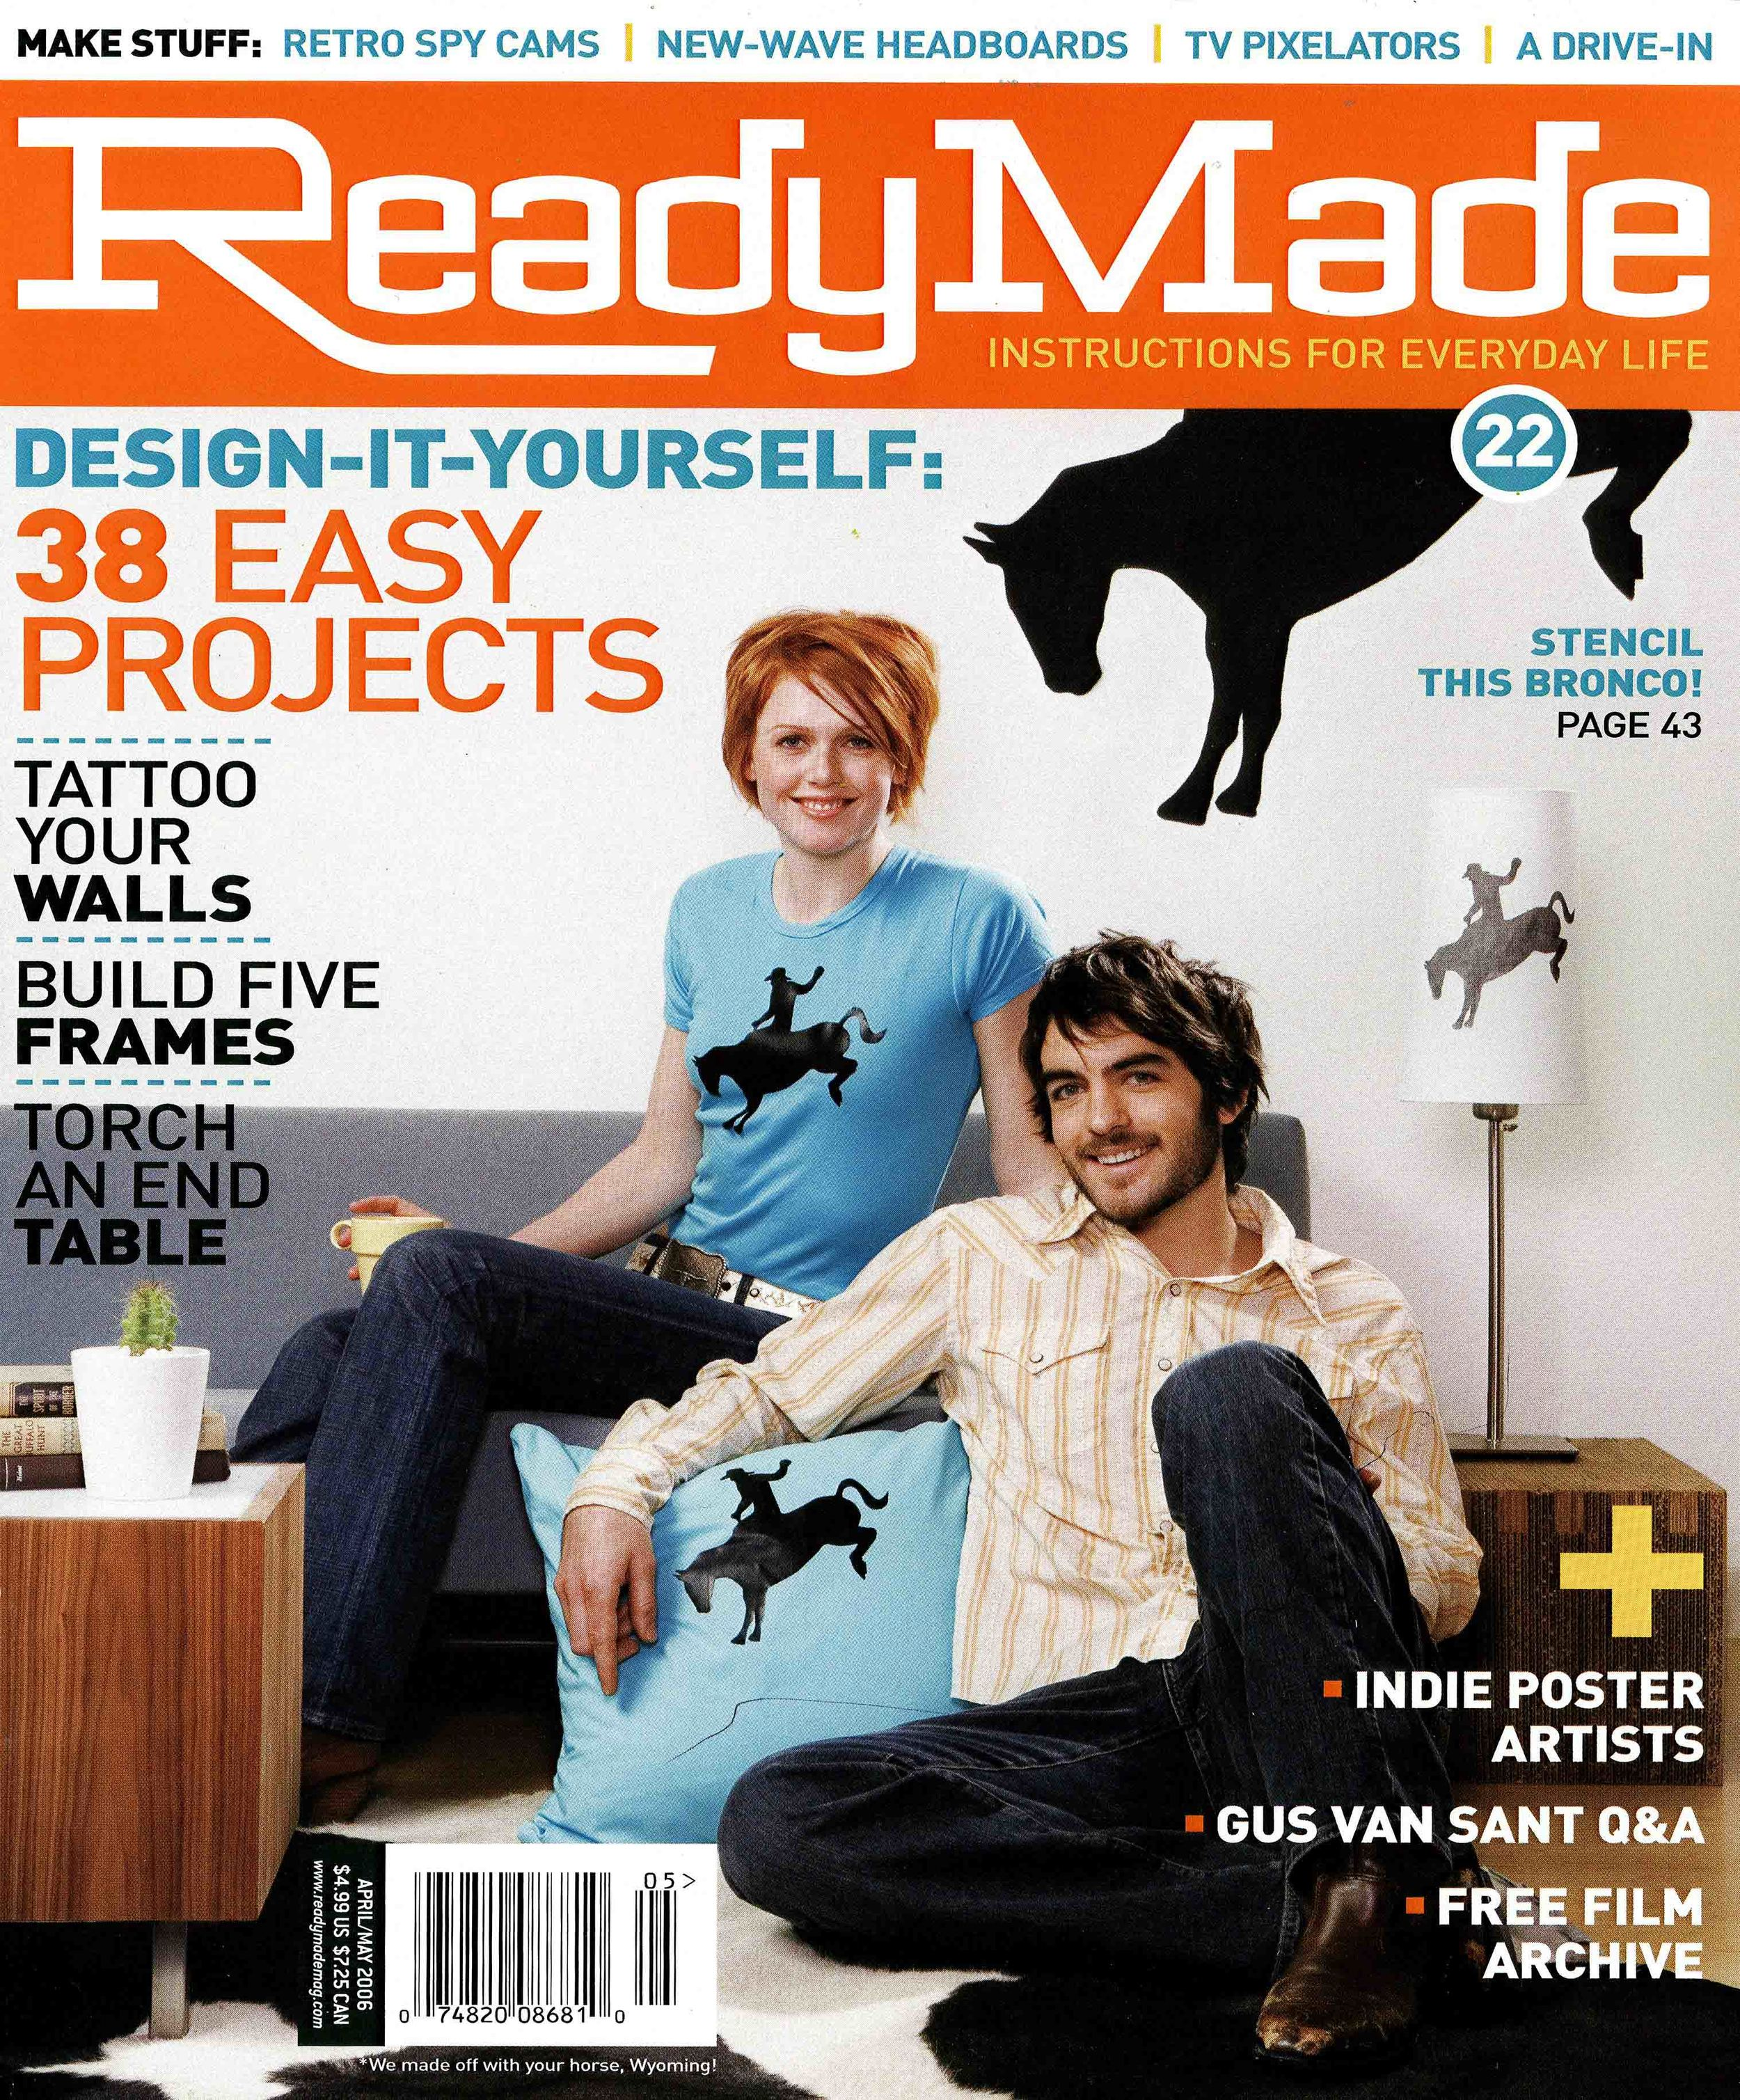 readymade_coverapr_may06.jpg